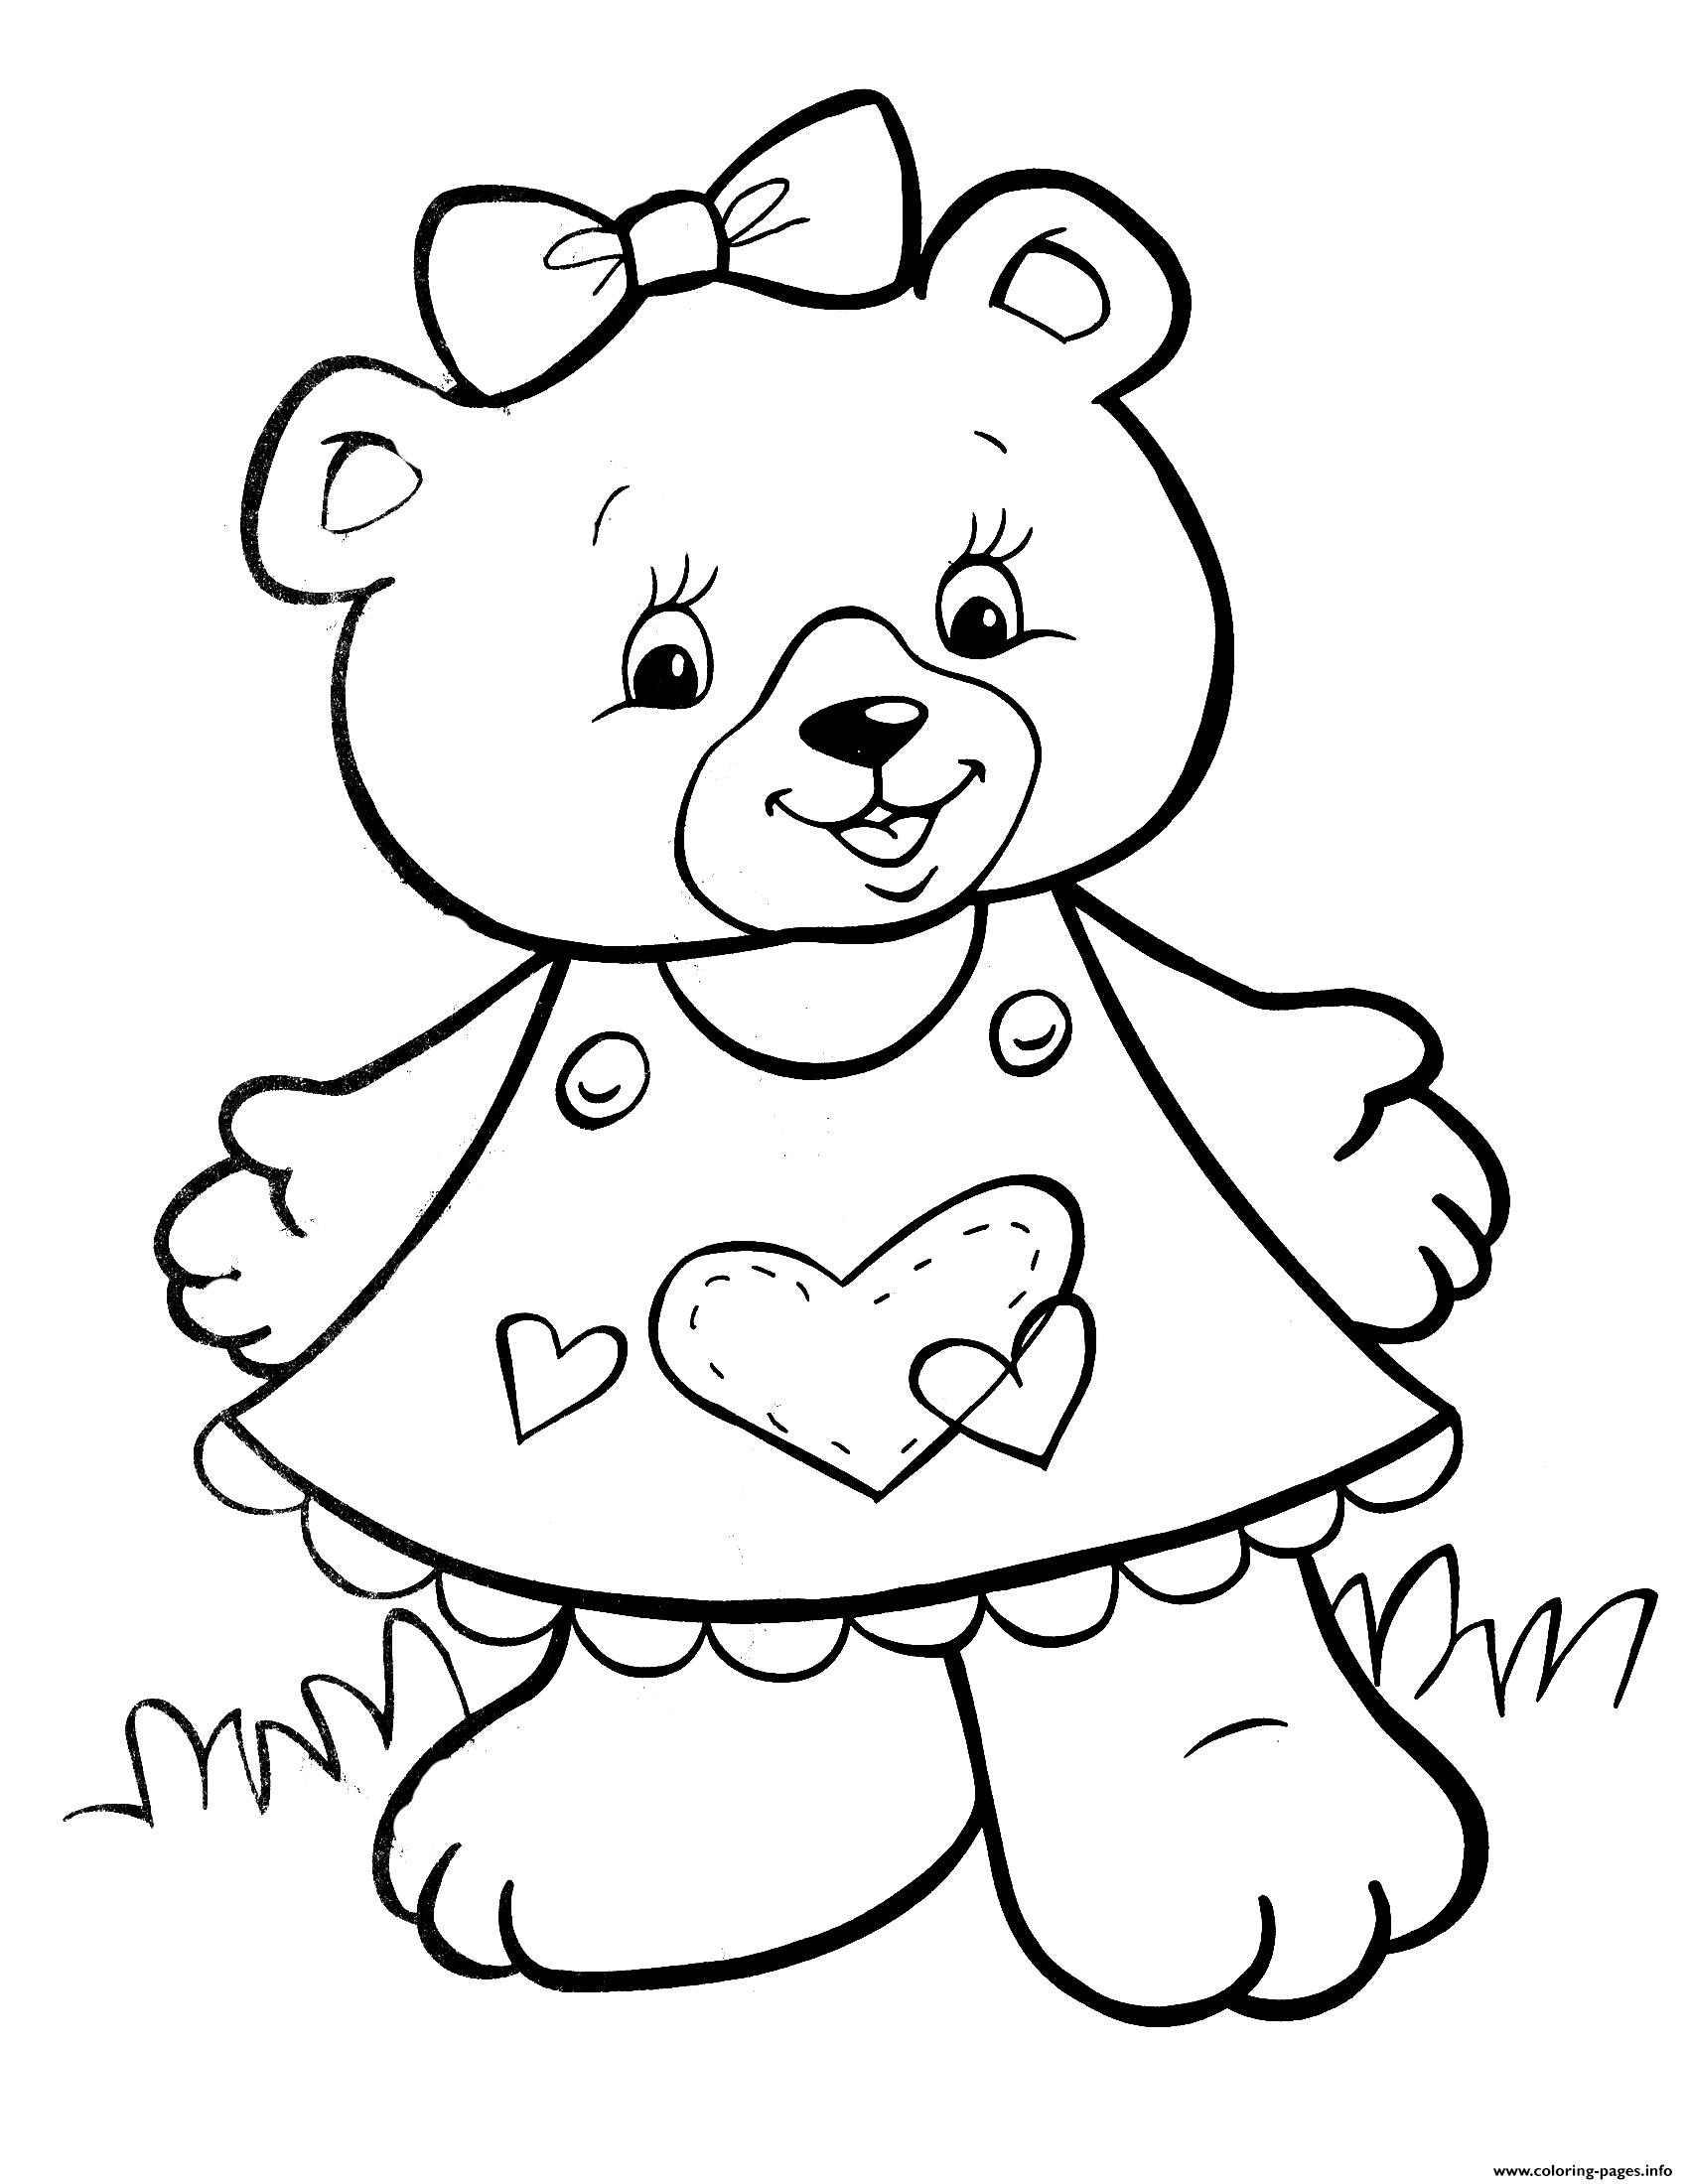 Crayola Lovely Teddy Bear Girls Coloring Pages Printable